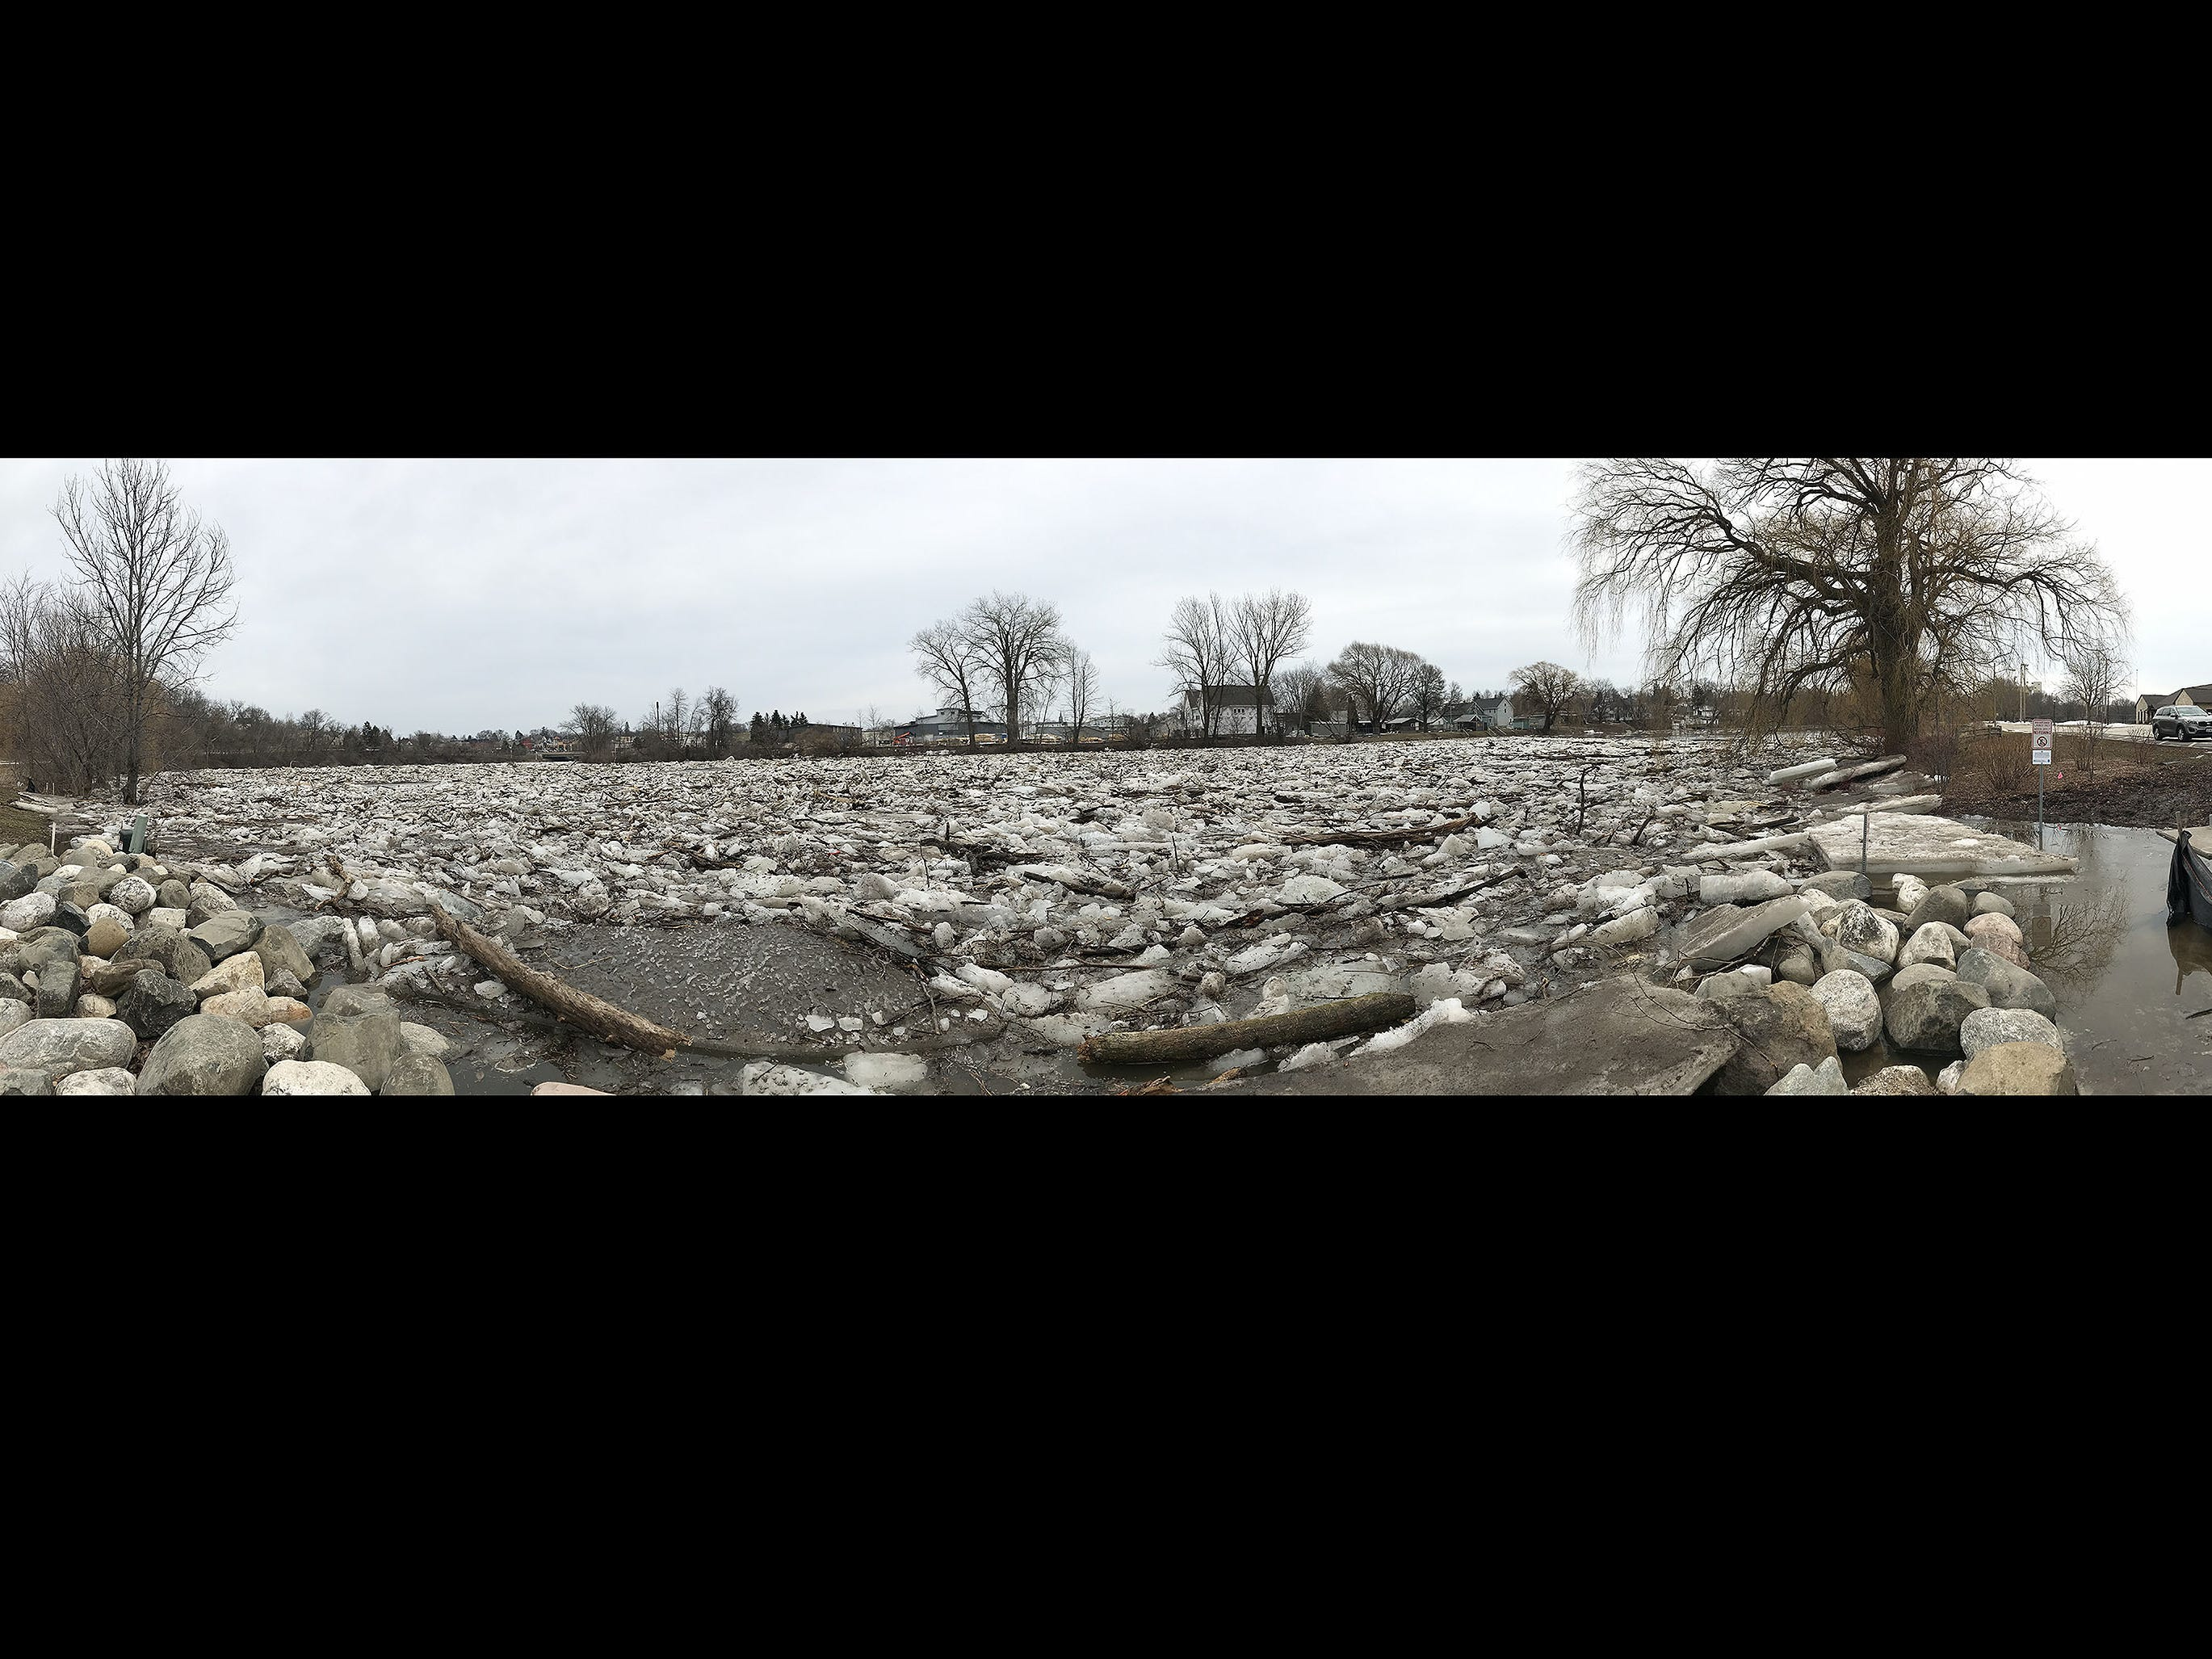 Ice jams on the Sheboygan River at Kiwanis Park in a panoramic image, Wednesday, March 20, 2019, in Sheboygan, Wis.